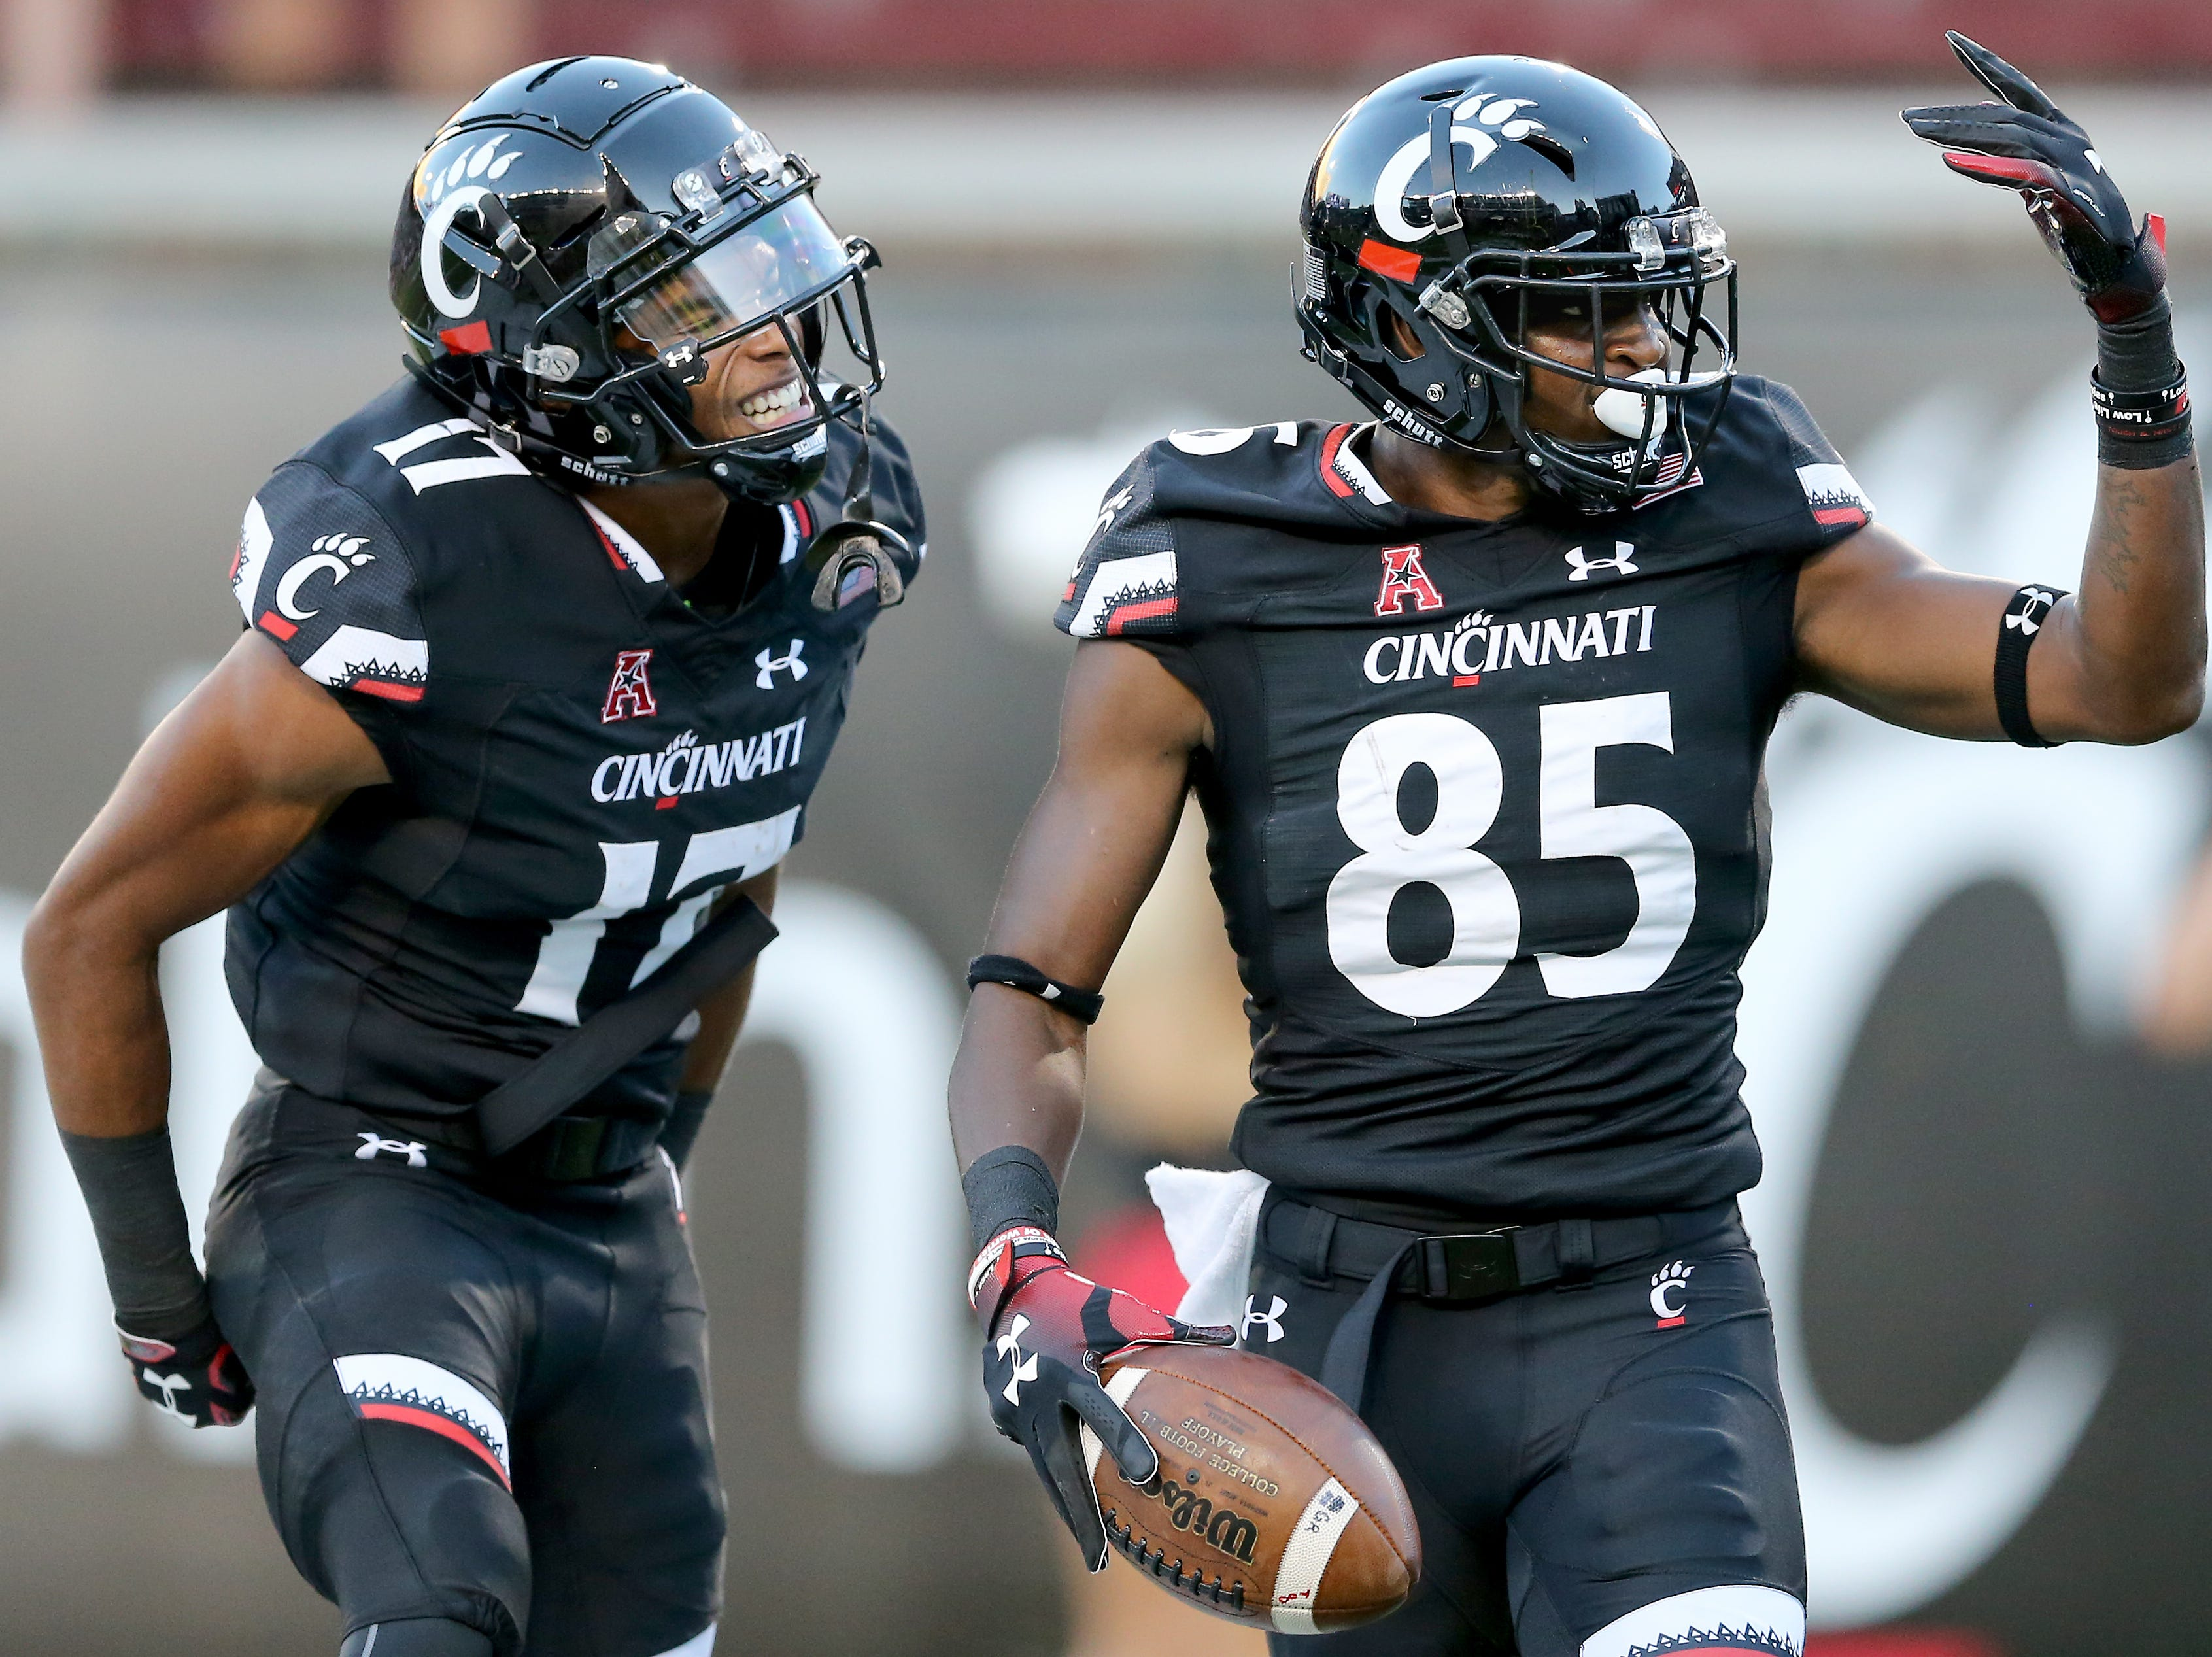 Cincinnati Bearcats wide receiver Thomas Geddis (85) celebrates a touchdown pass with Cincinnati Bearcats wide receiver Rashad Medaris (17) in the first quarter during a college football game between the Cincinnati Bearcats and the Alabama A&M Bulldogs, Saturday, Sept. 15, 2018, at Nippert Stadium in Cincinnati.